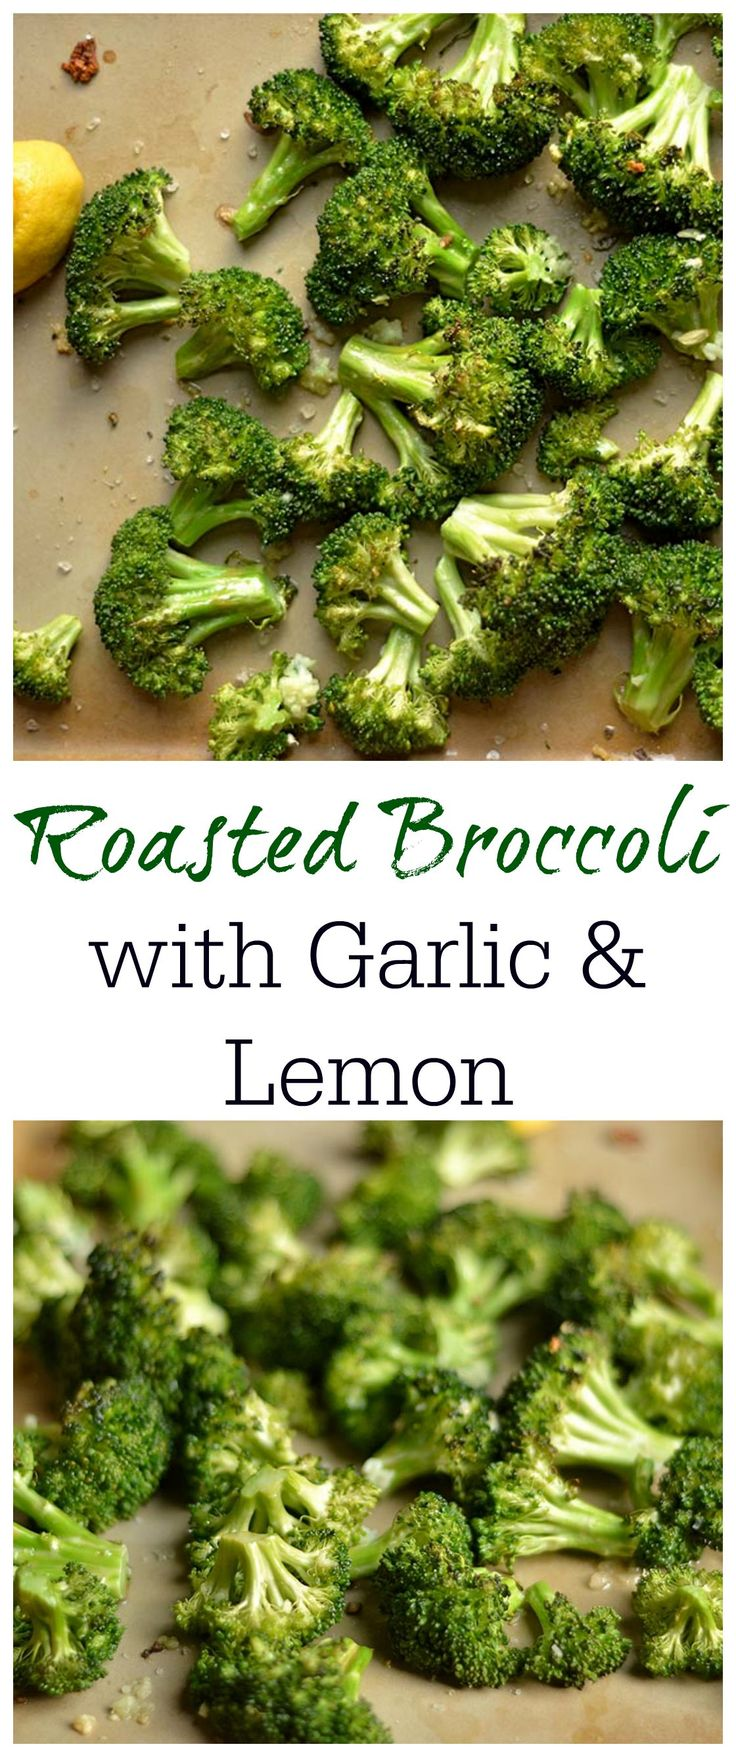 The absolute BEST way to eat broccoli! Super easy side dish the whole family can enjoy!